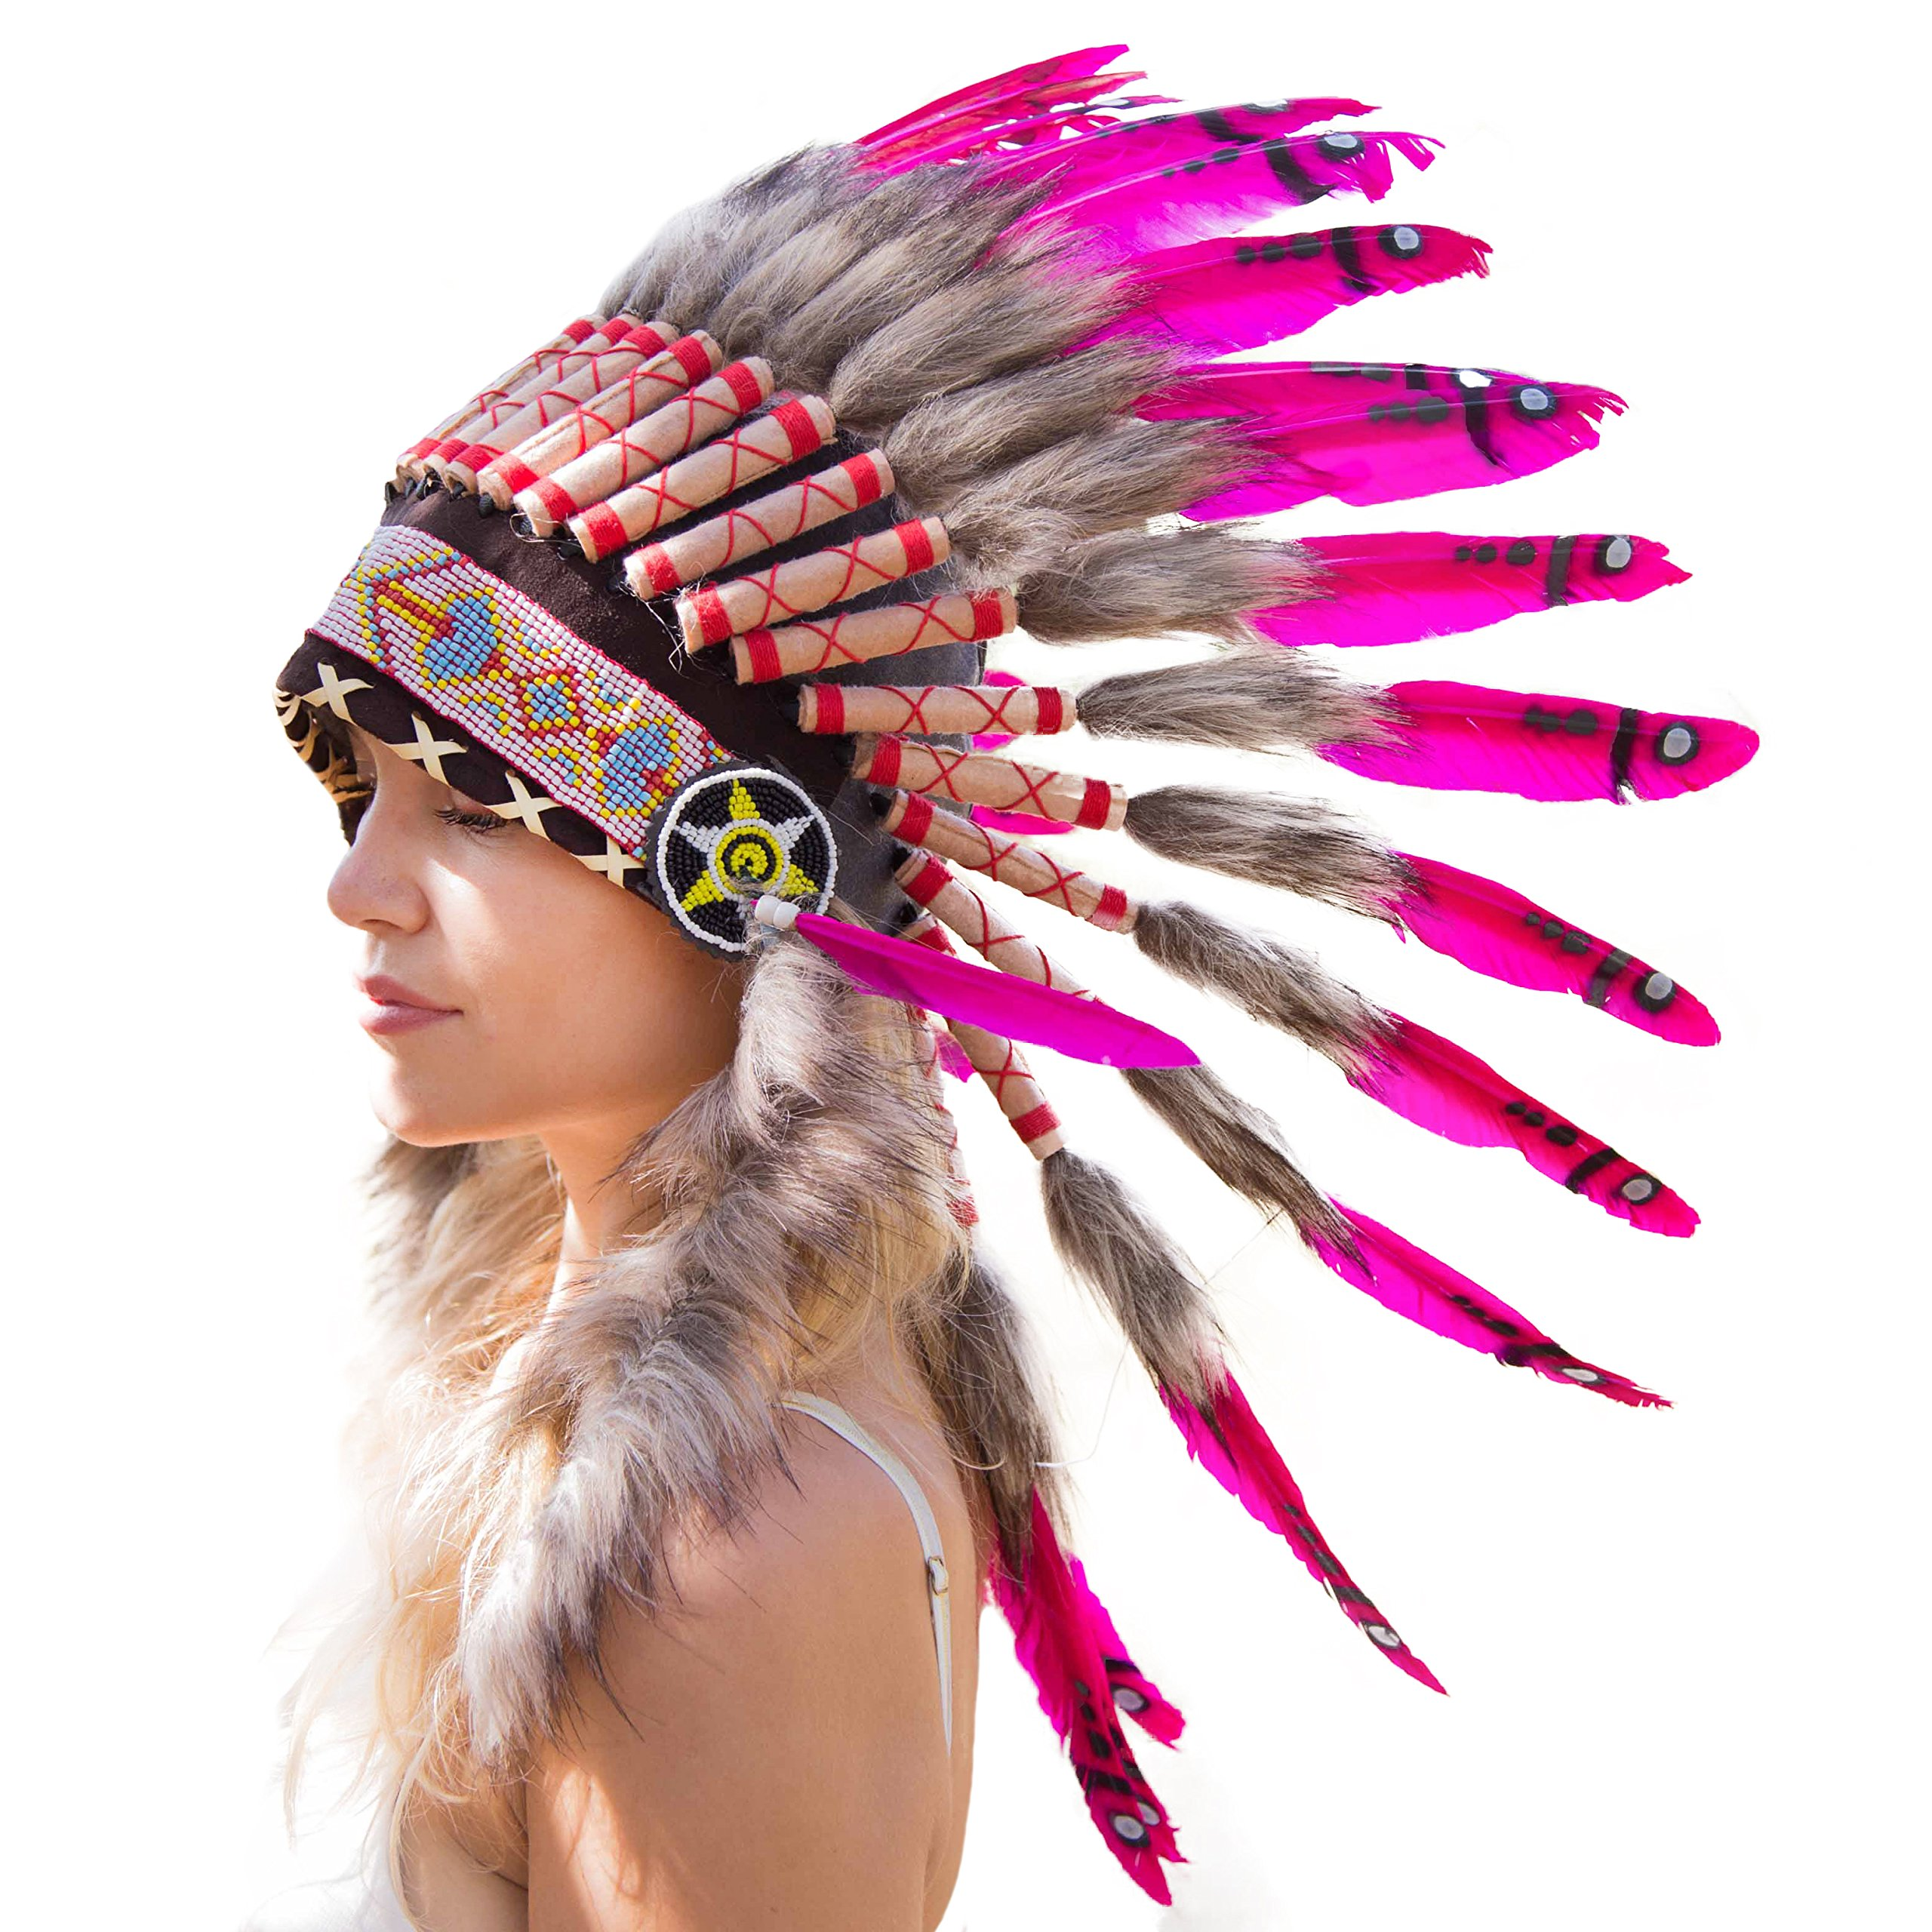 Novum Crafts Indian Style Headdress | Native American Style Headdress Pink